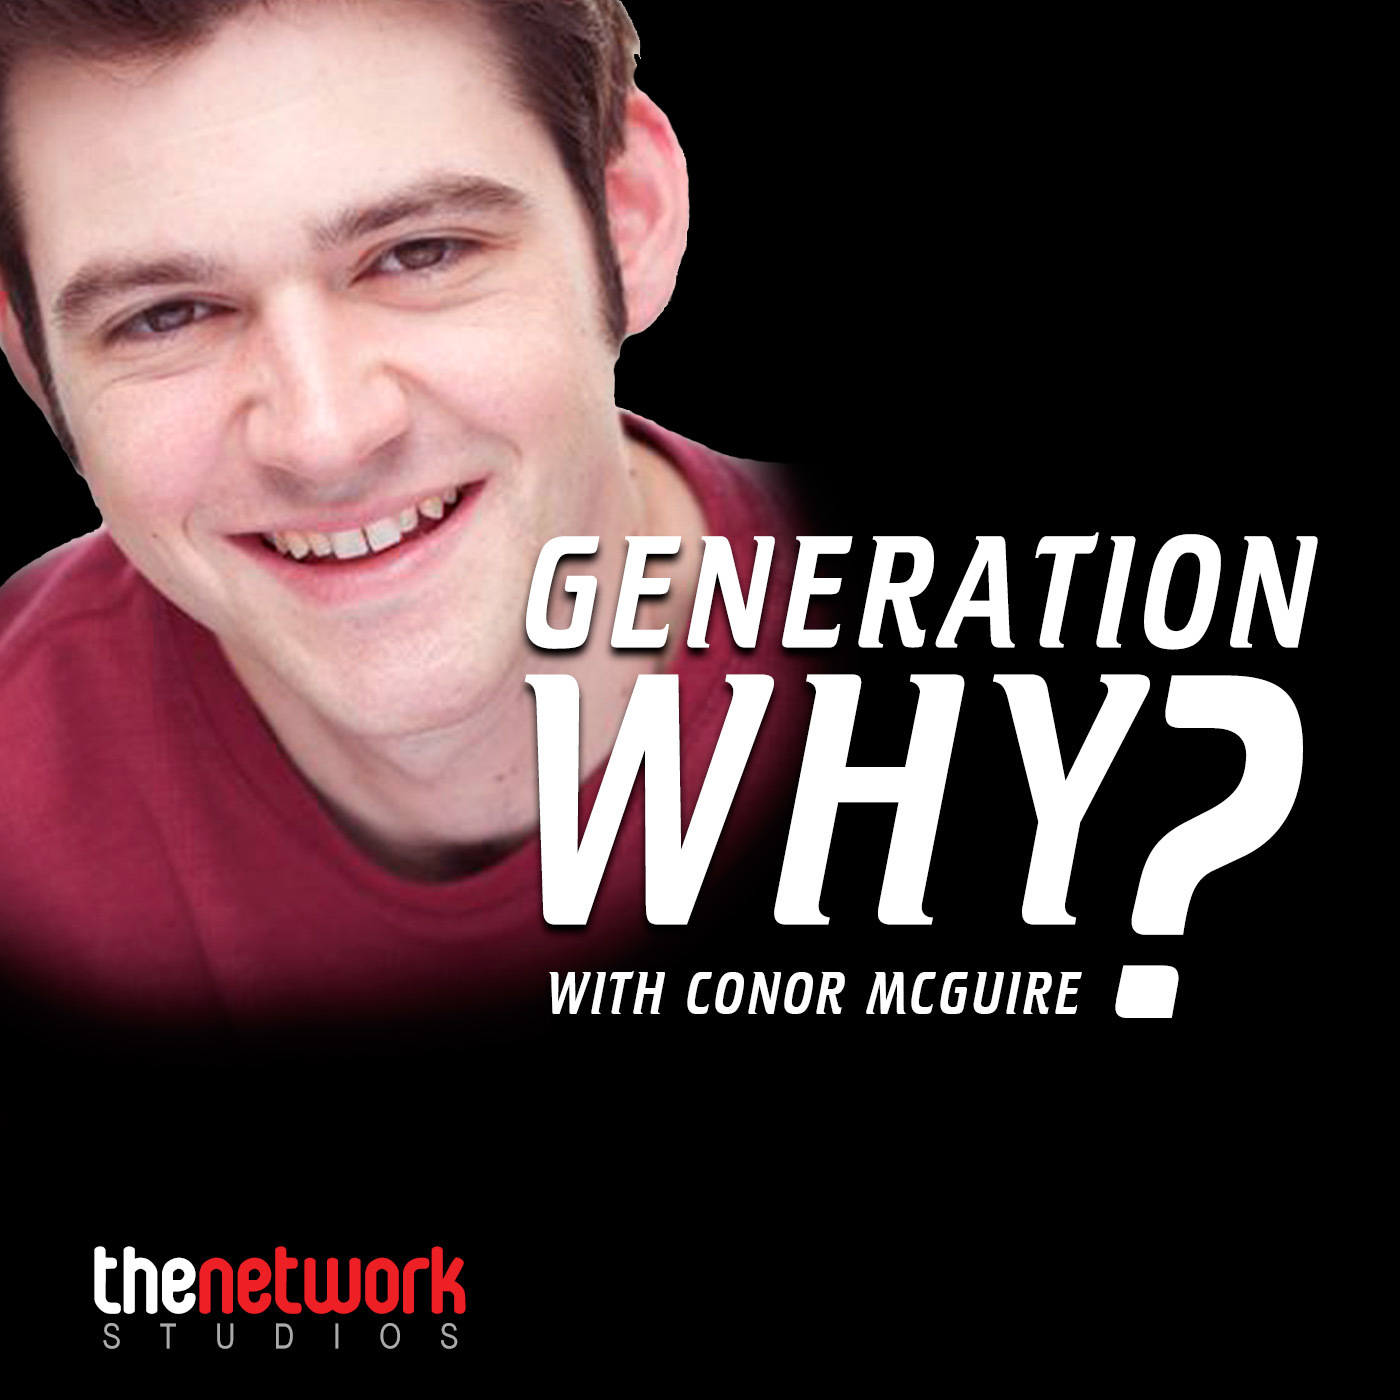 Generation Why?